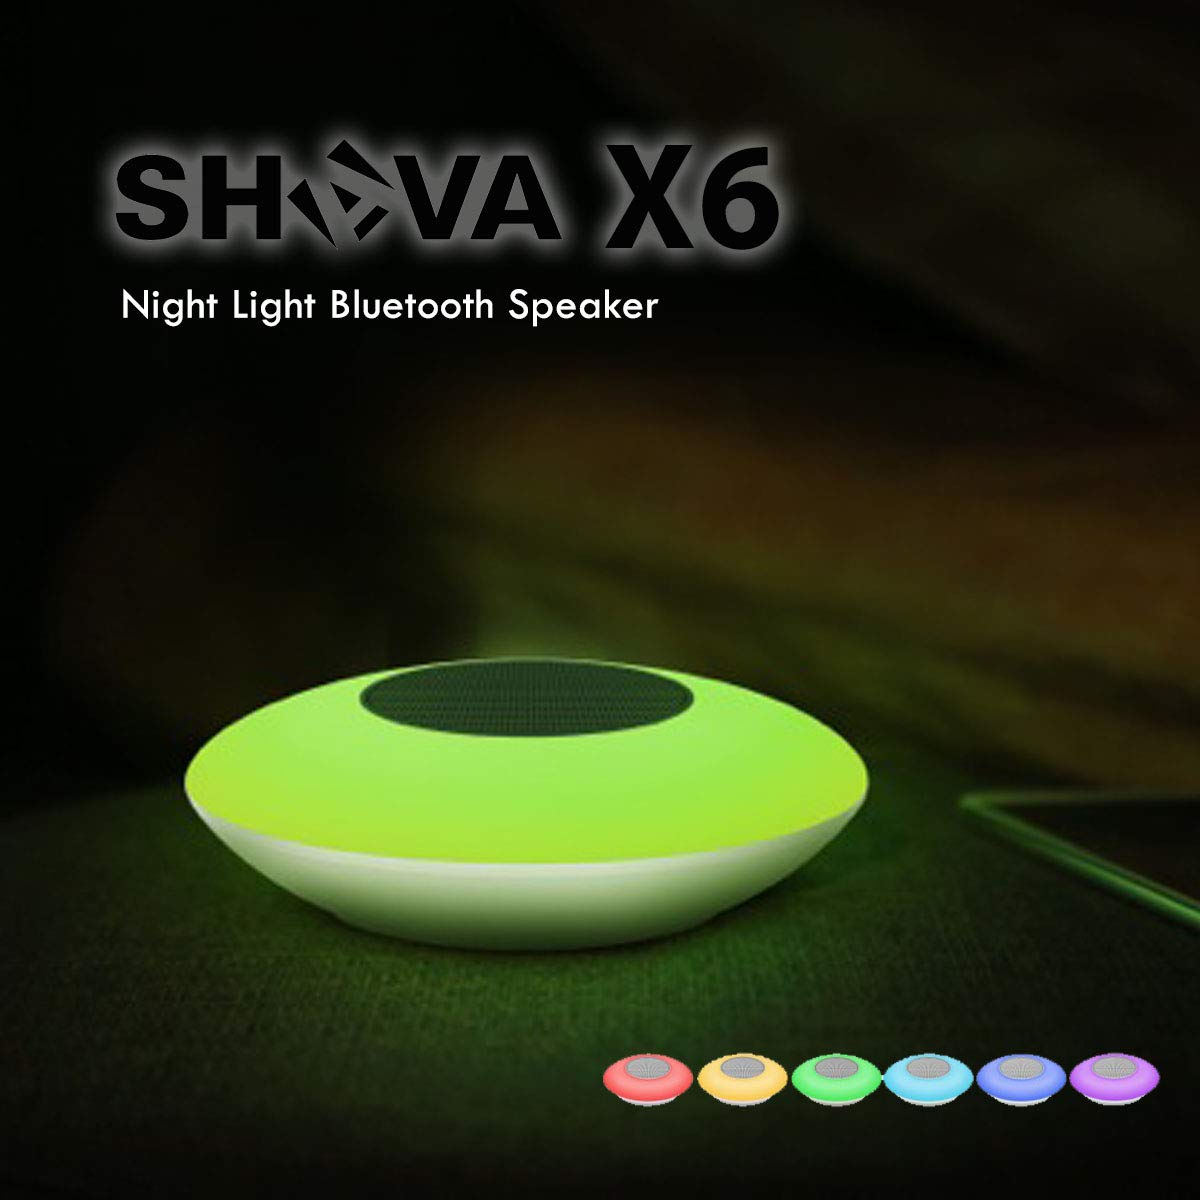 Best Night Light Bluetooth Speaker